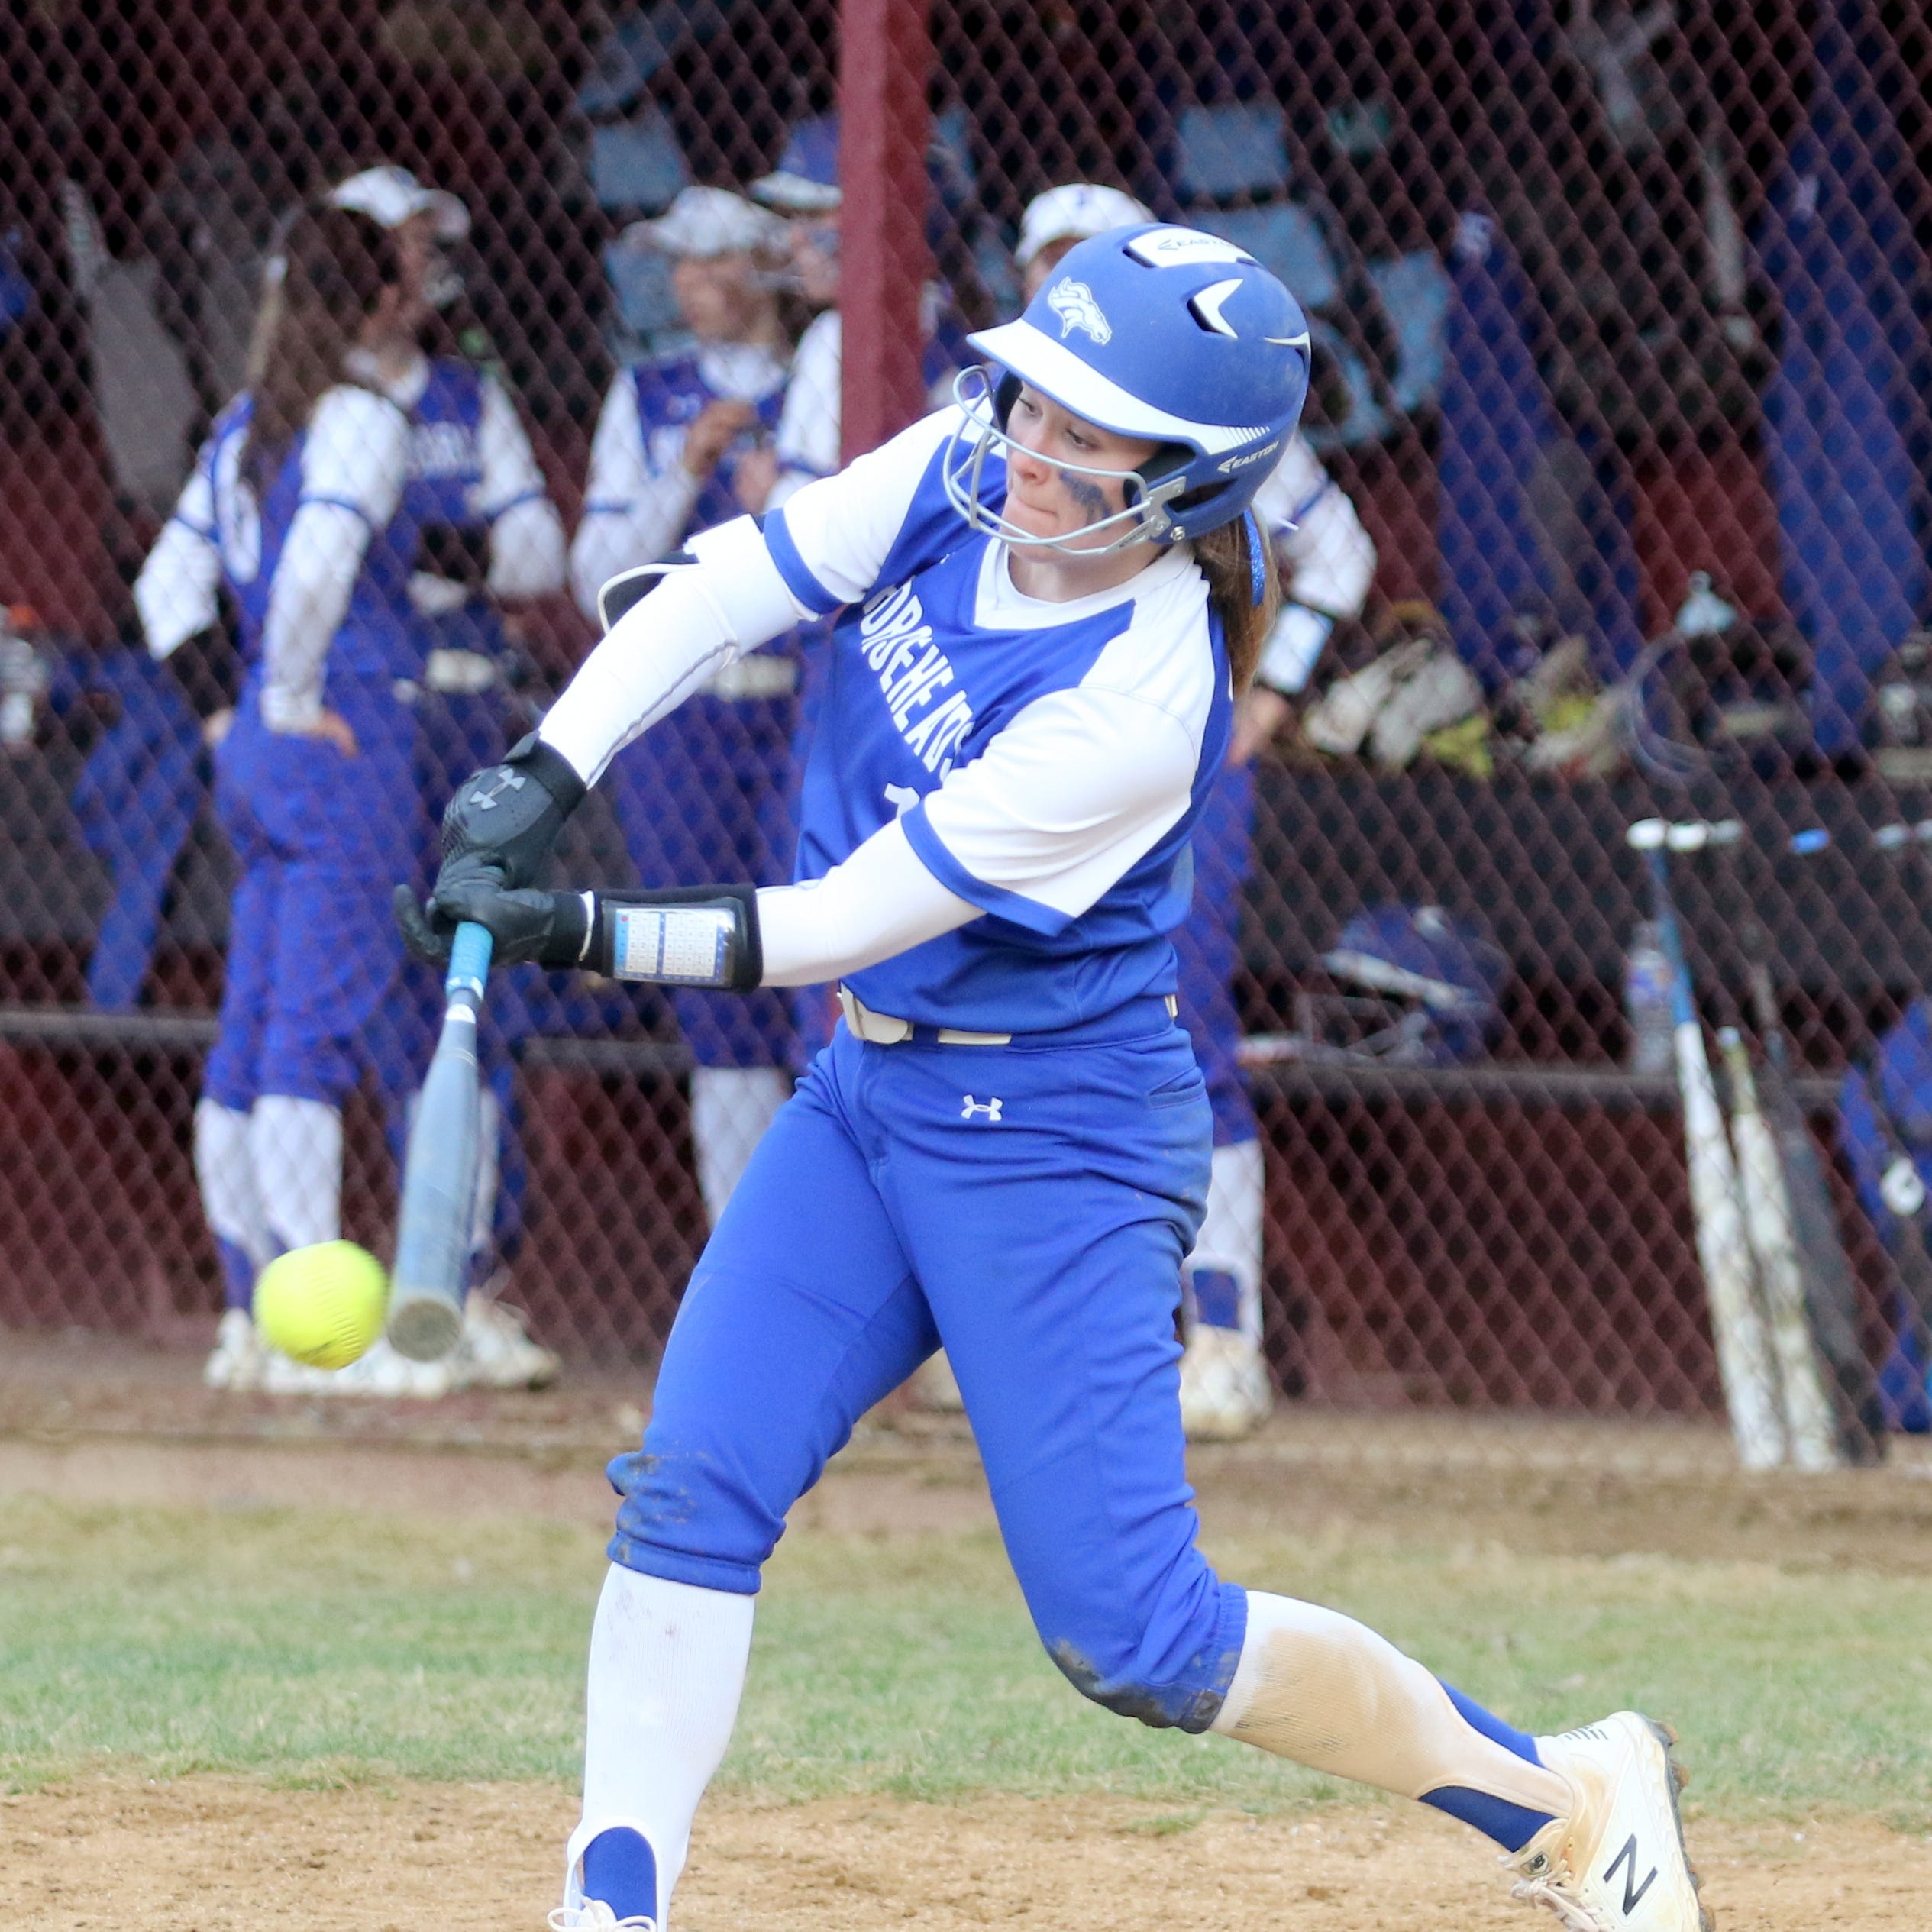 Horseheads offense comes up big again in softball win over Elmira